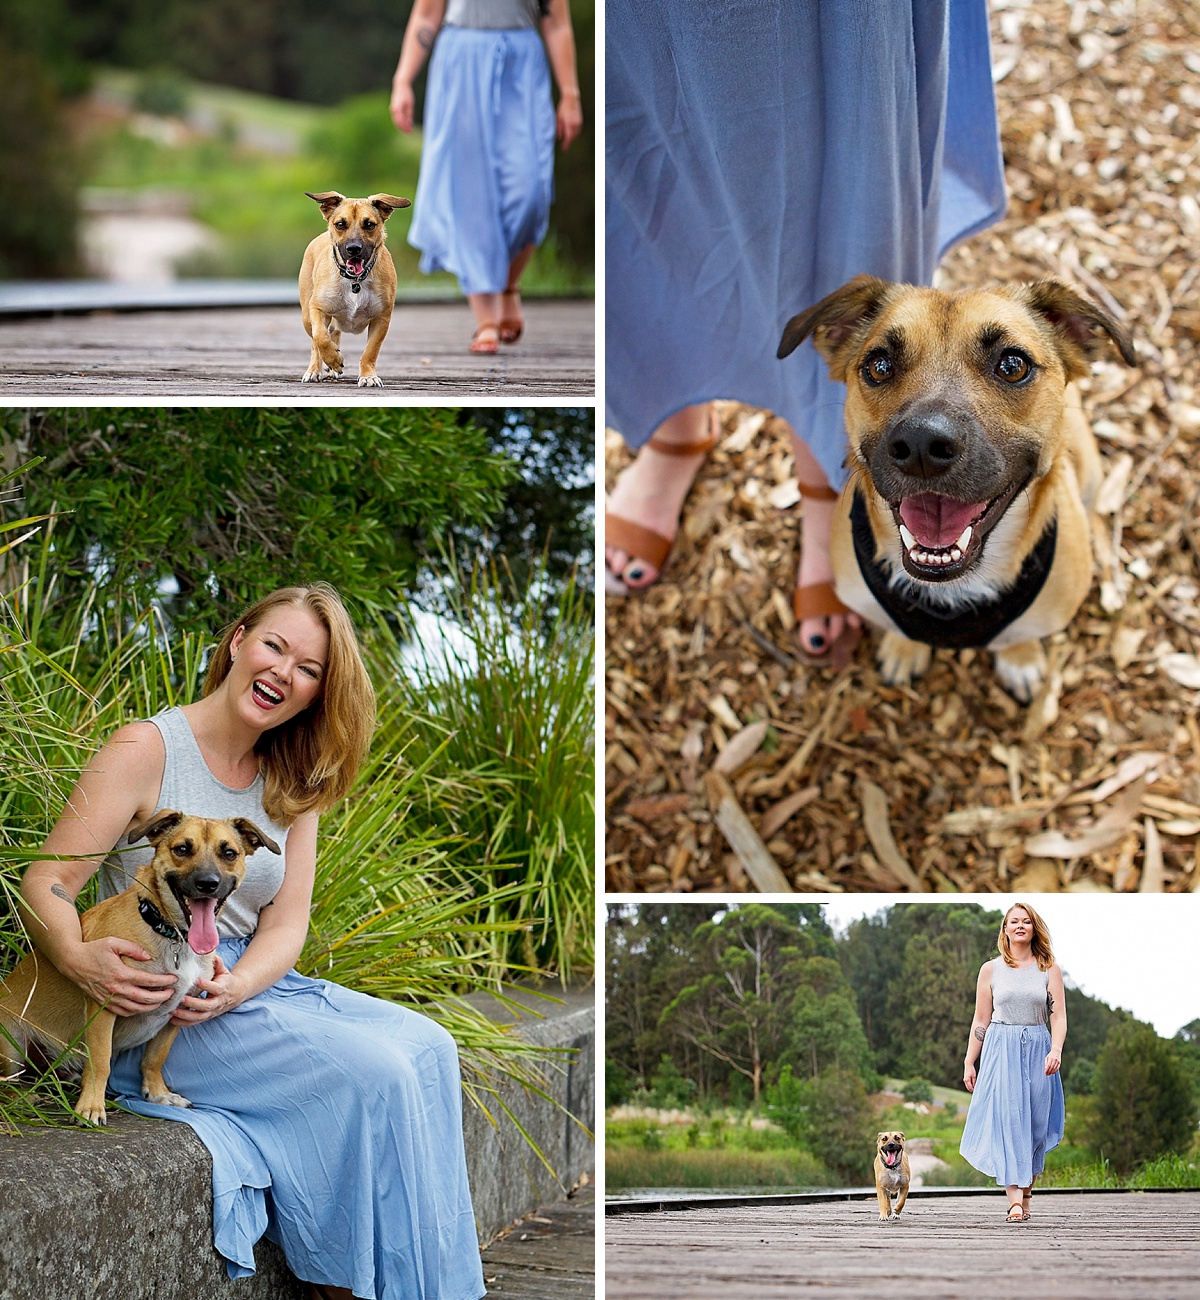 Say hello to the sweet little corgi x german shepherd, Floki who along with his mum took part in the Dog Days of Summer an initiative started by Sydney pet photographer Pawtastic Photography.